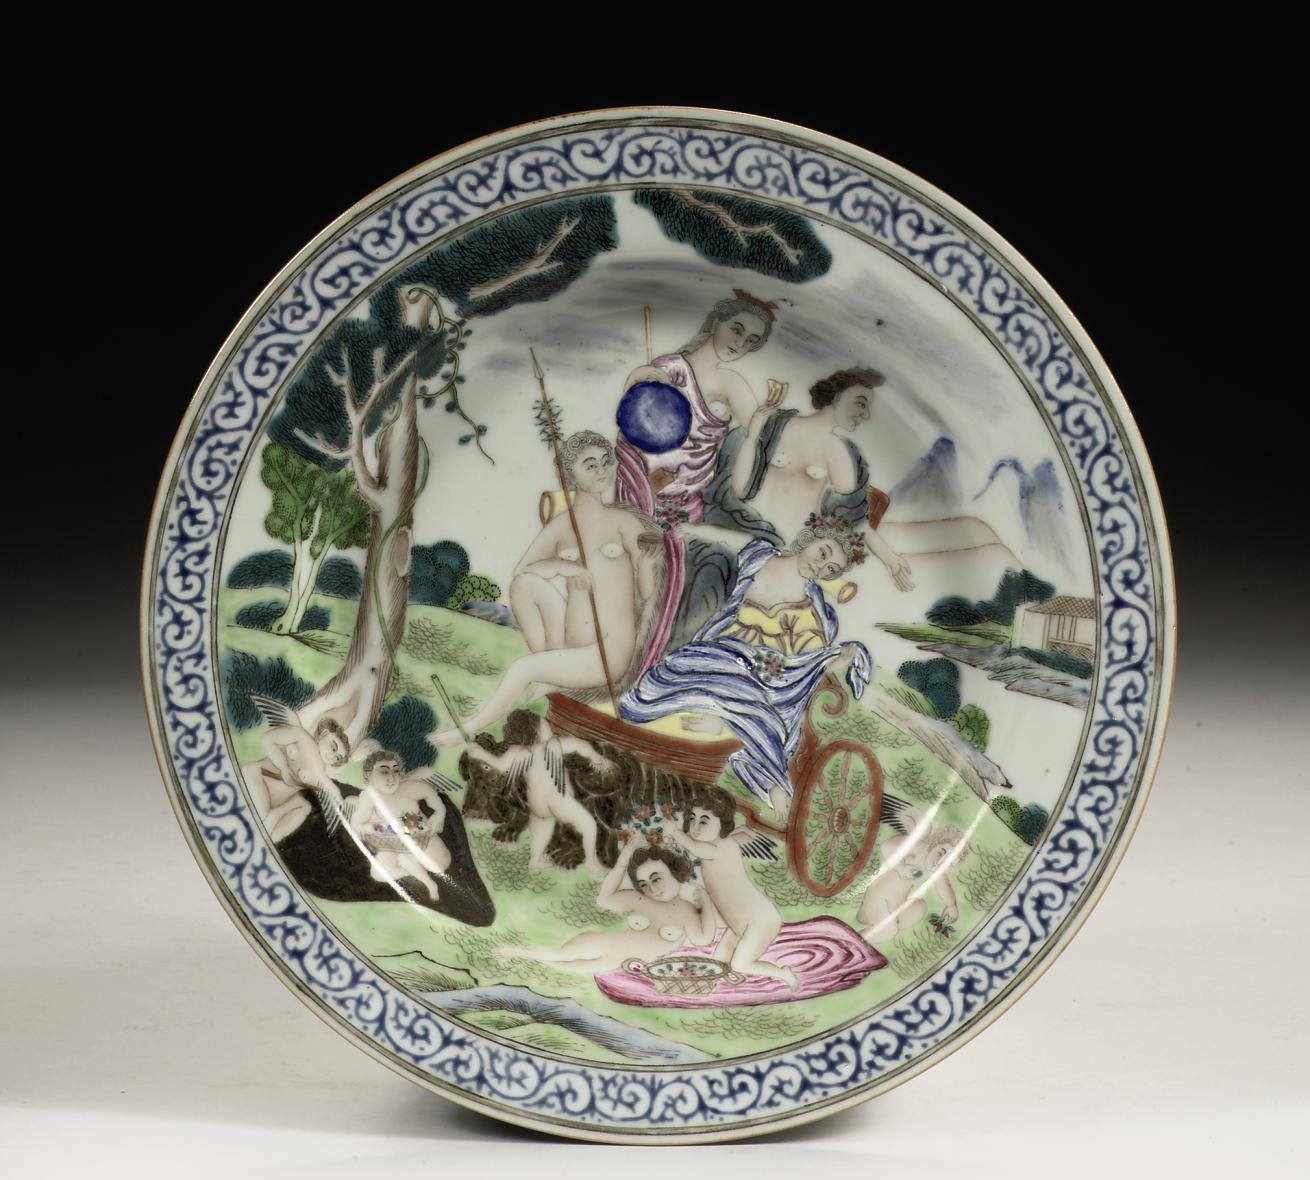 A Chinese famille rose 'four elements' plate depicting 'earth'